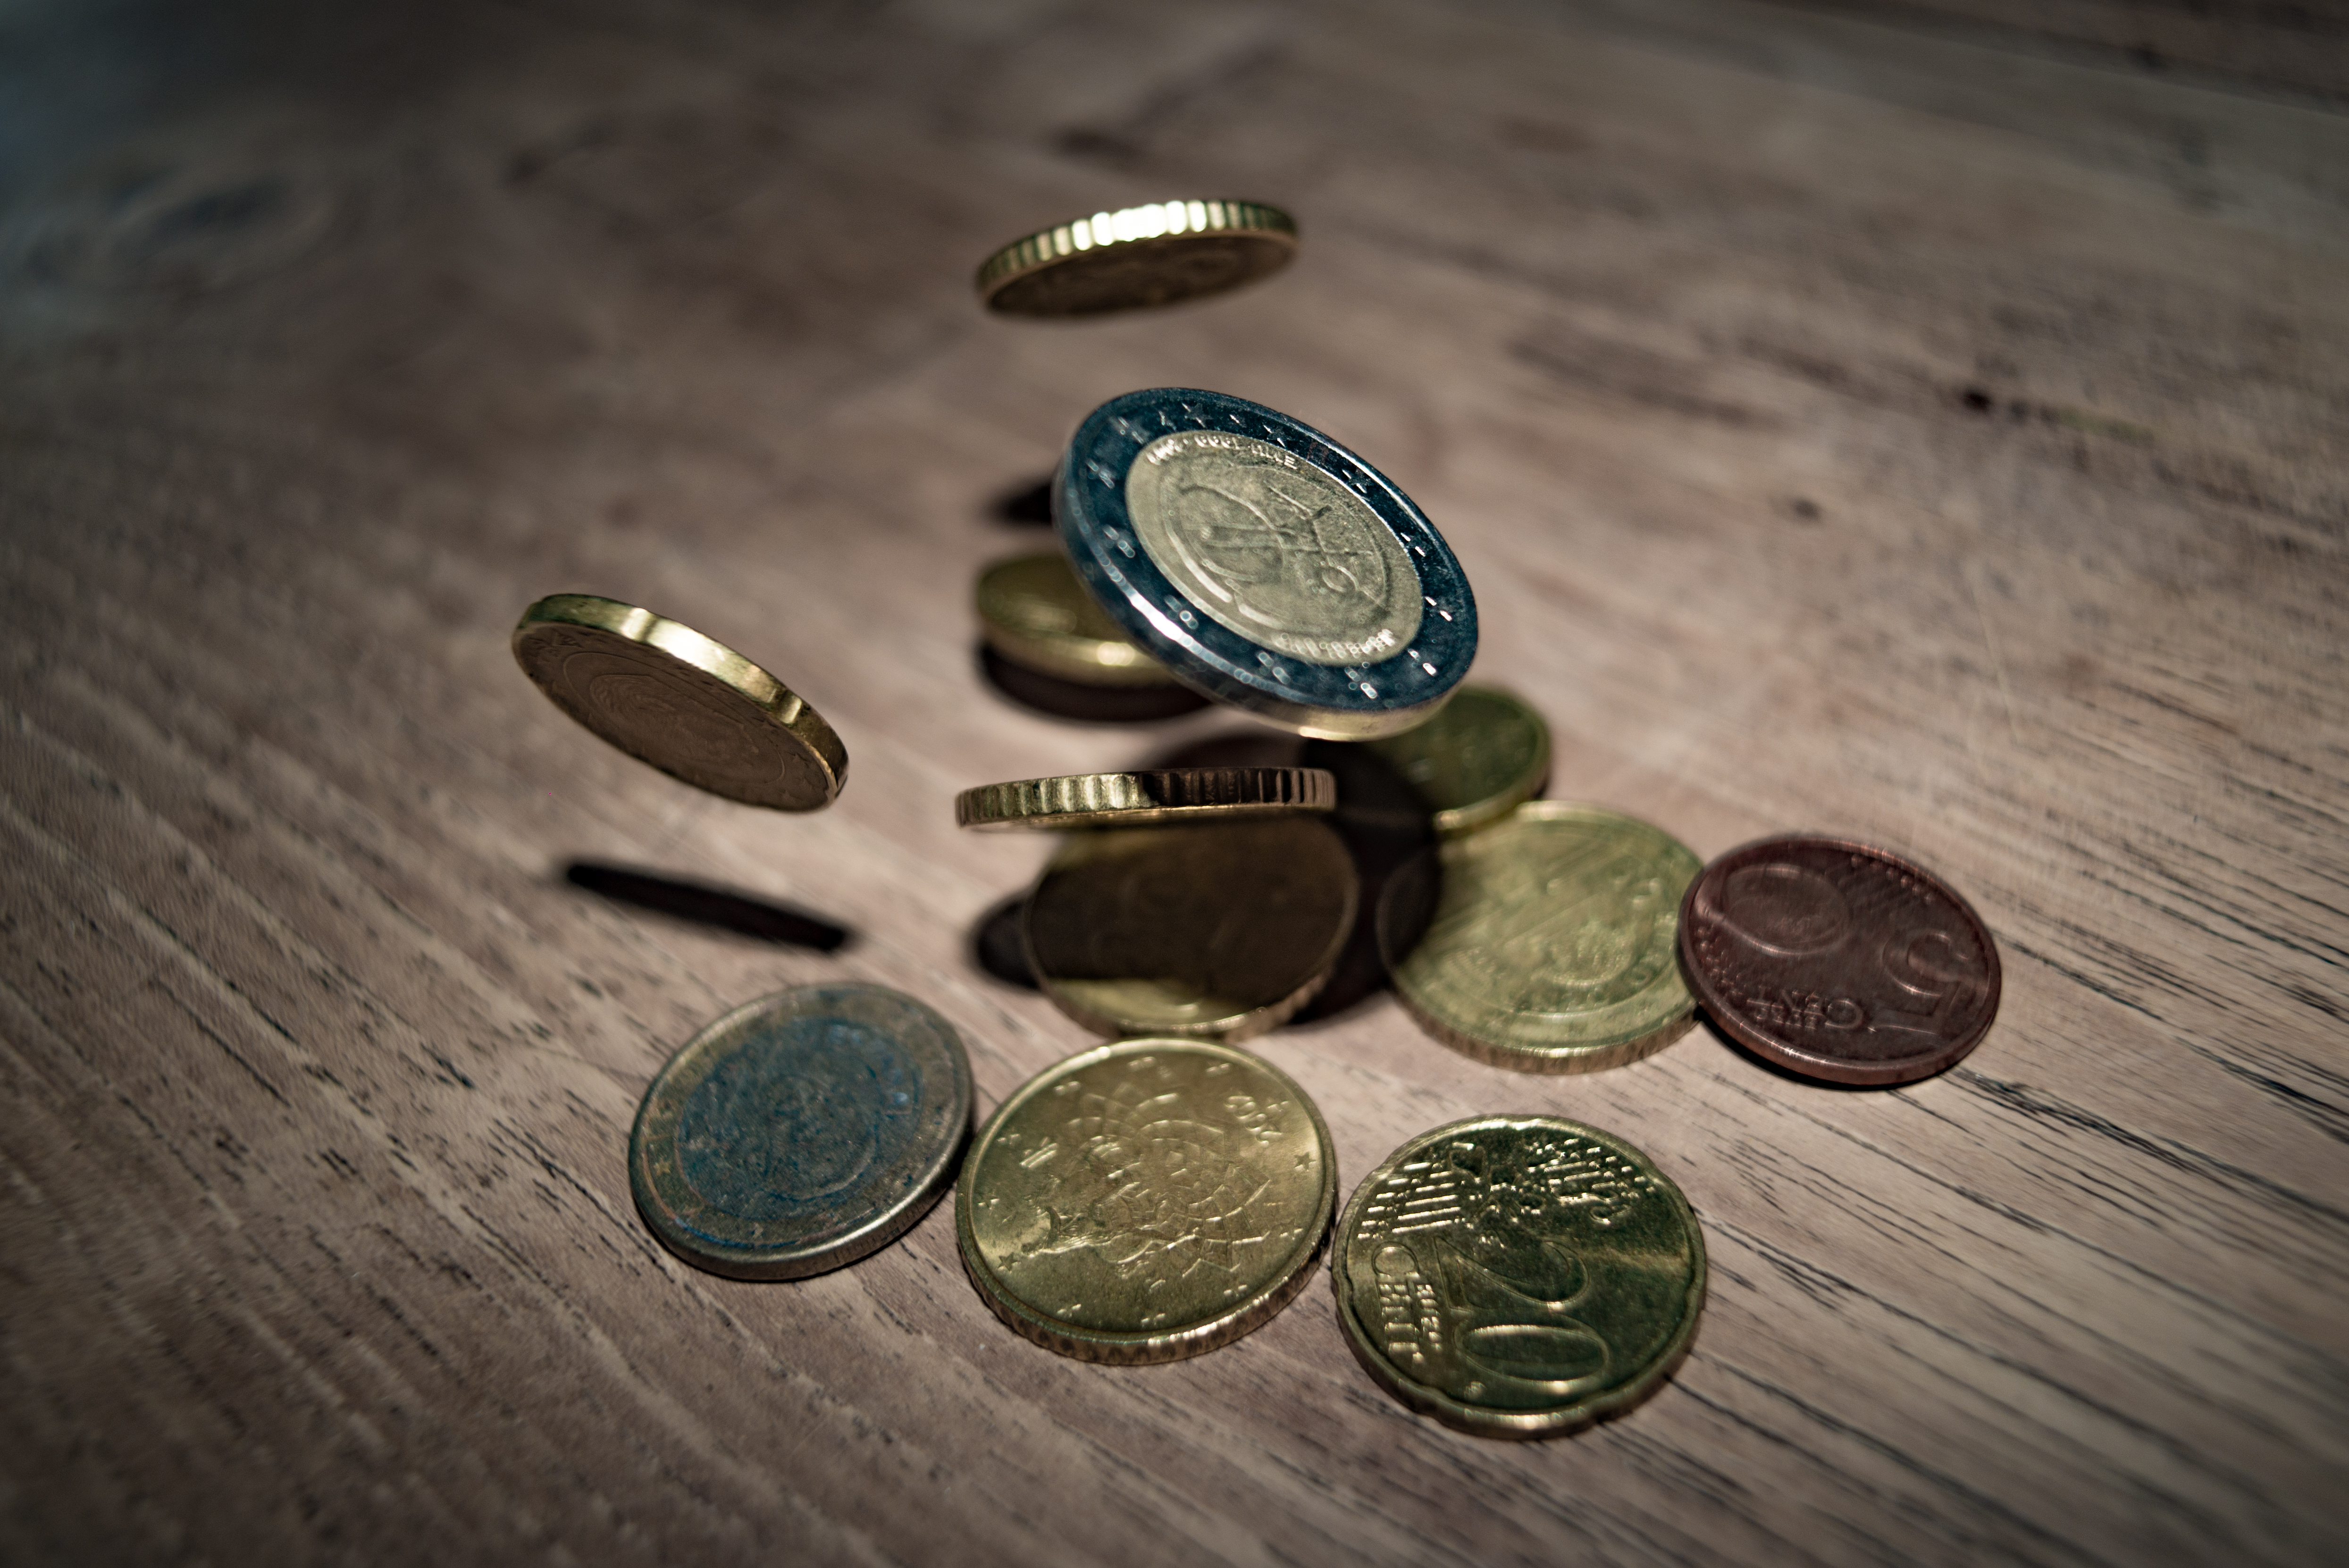 money-euro-coins-currency-332304.jpeg